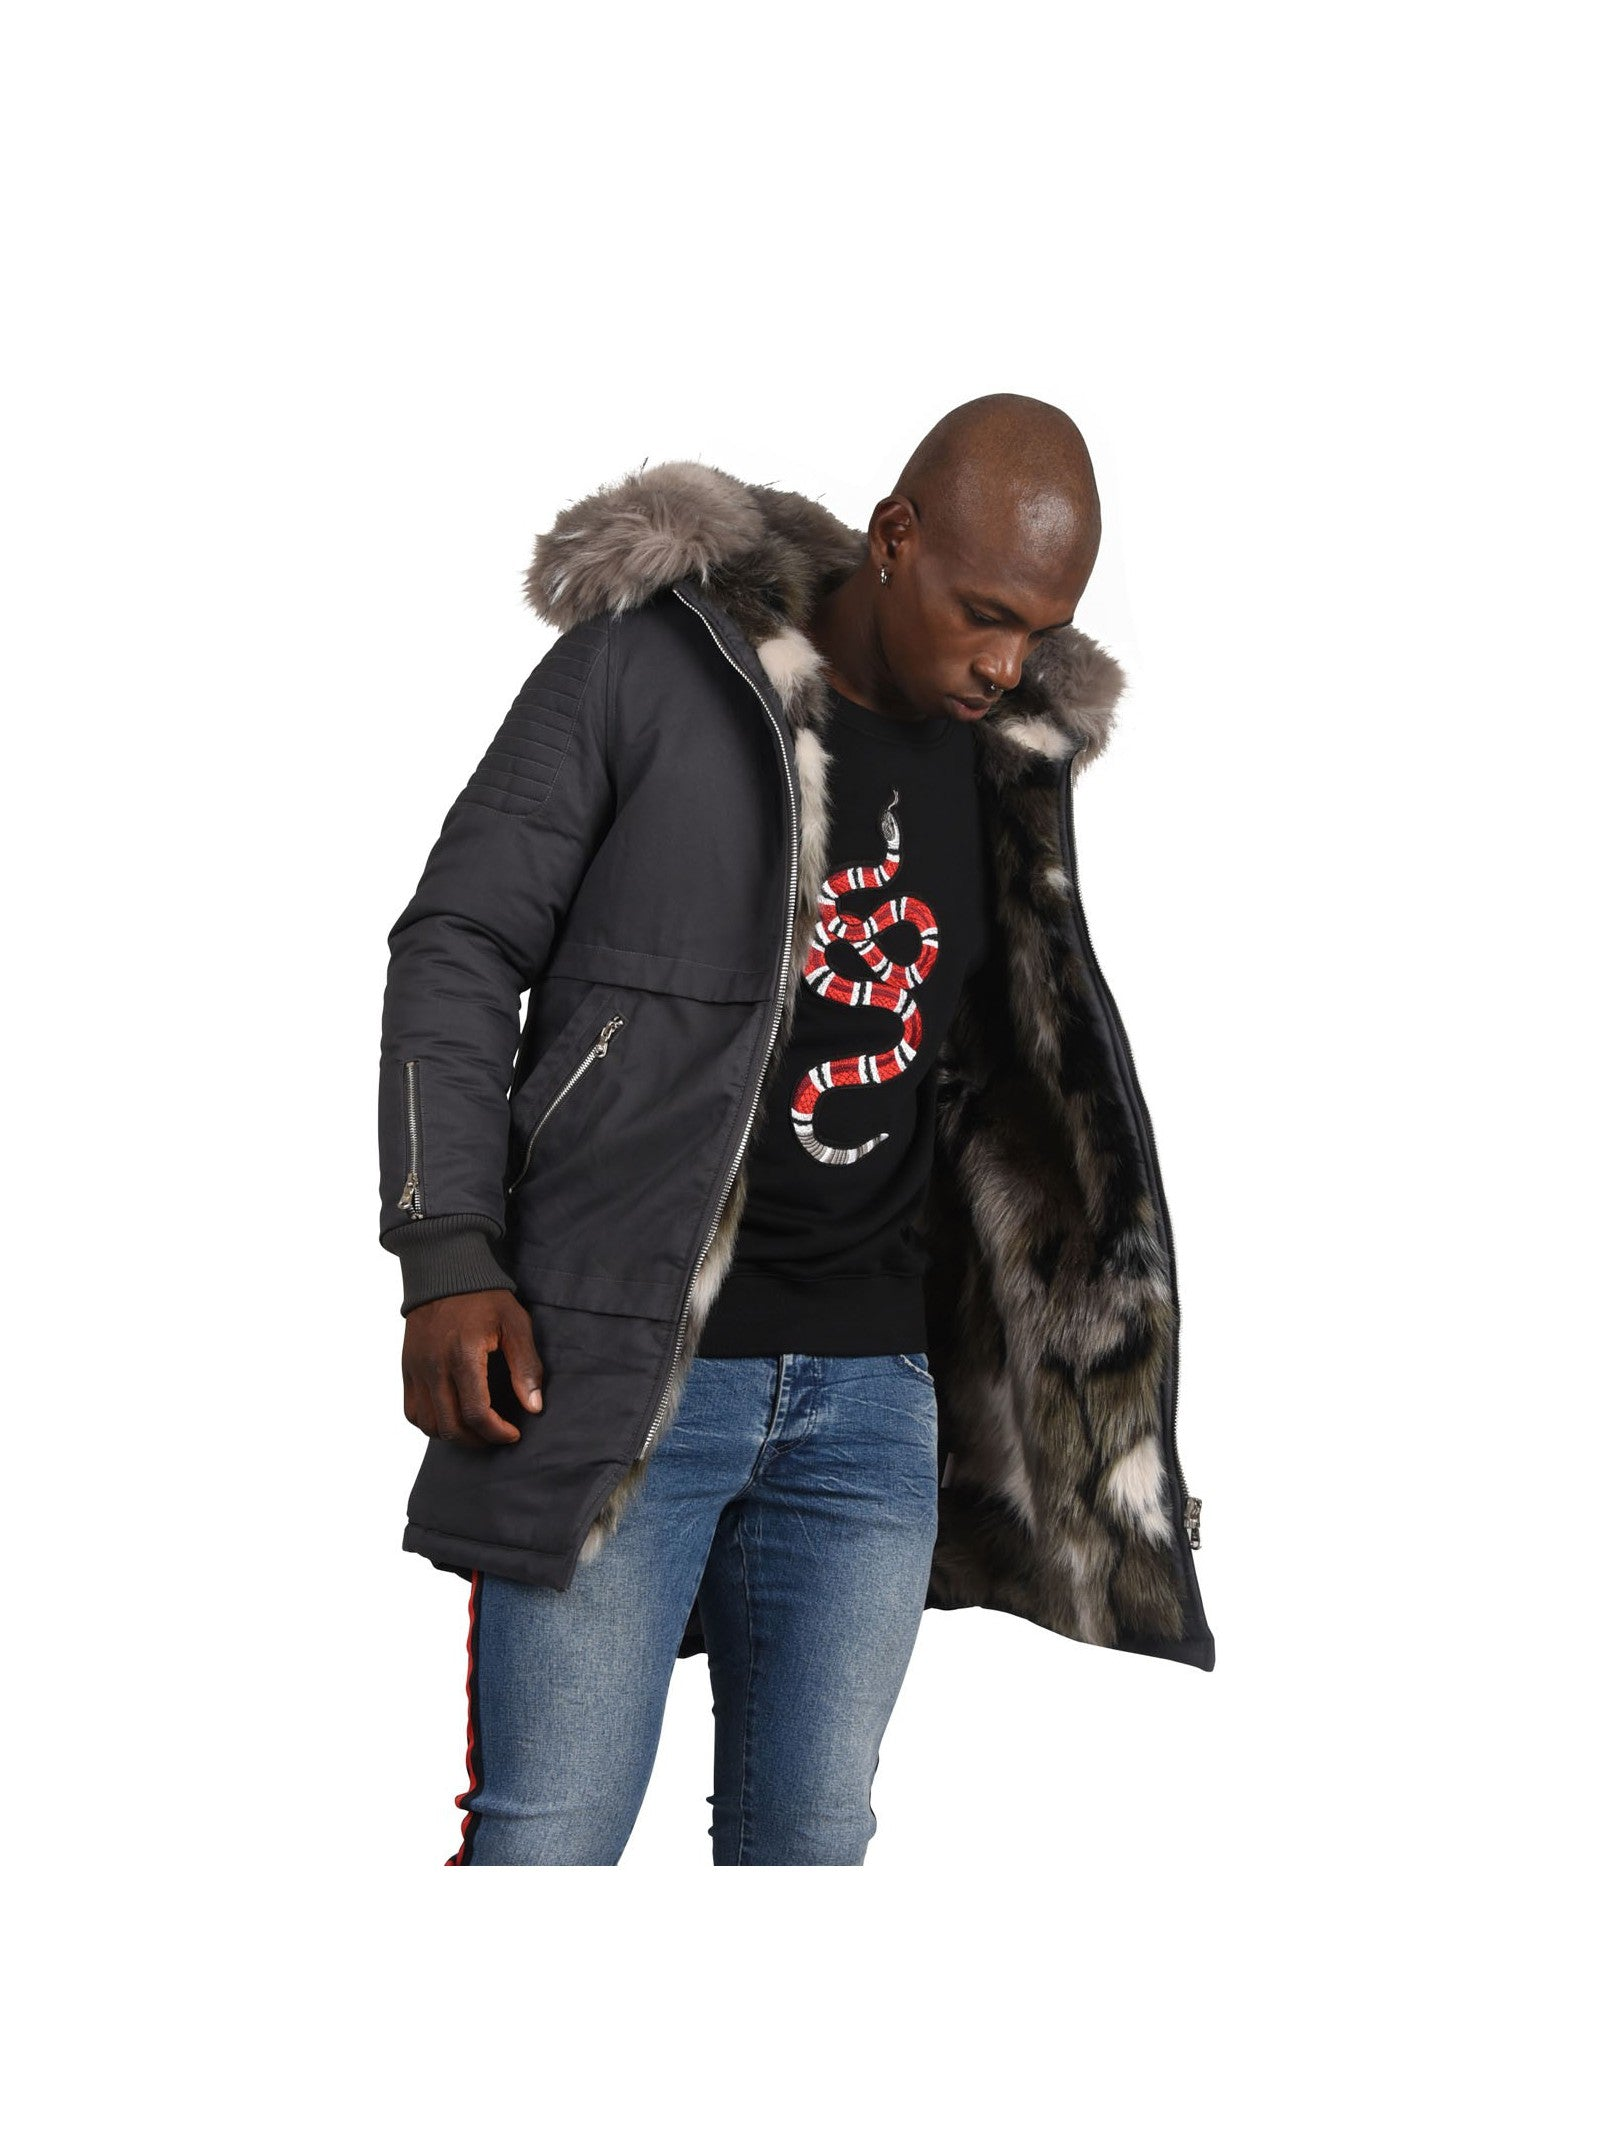 Men's Cotton Parka Grey Jacket Project X Paris